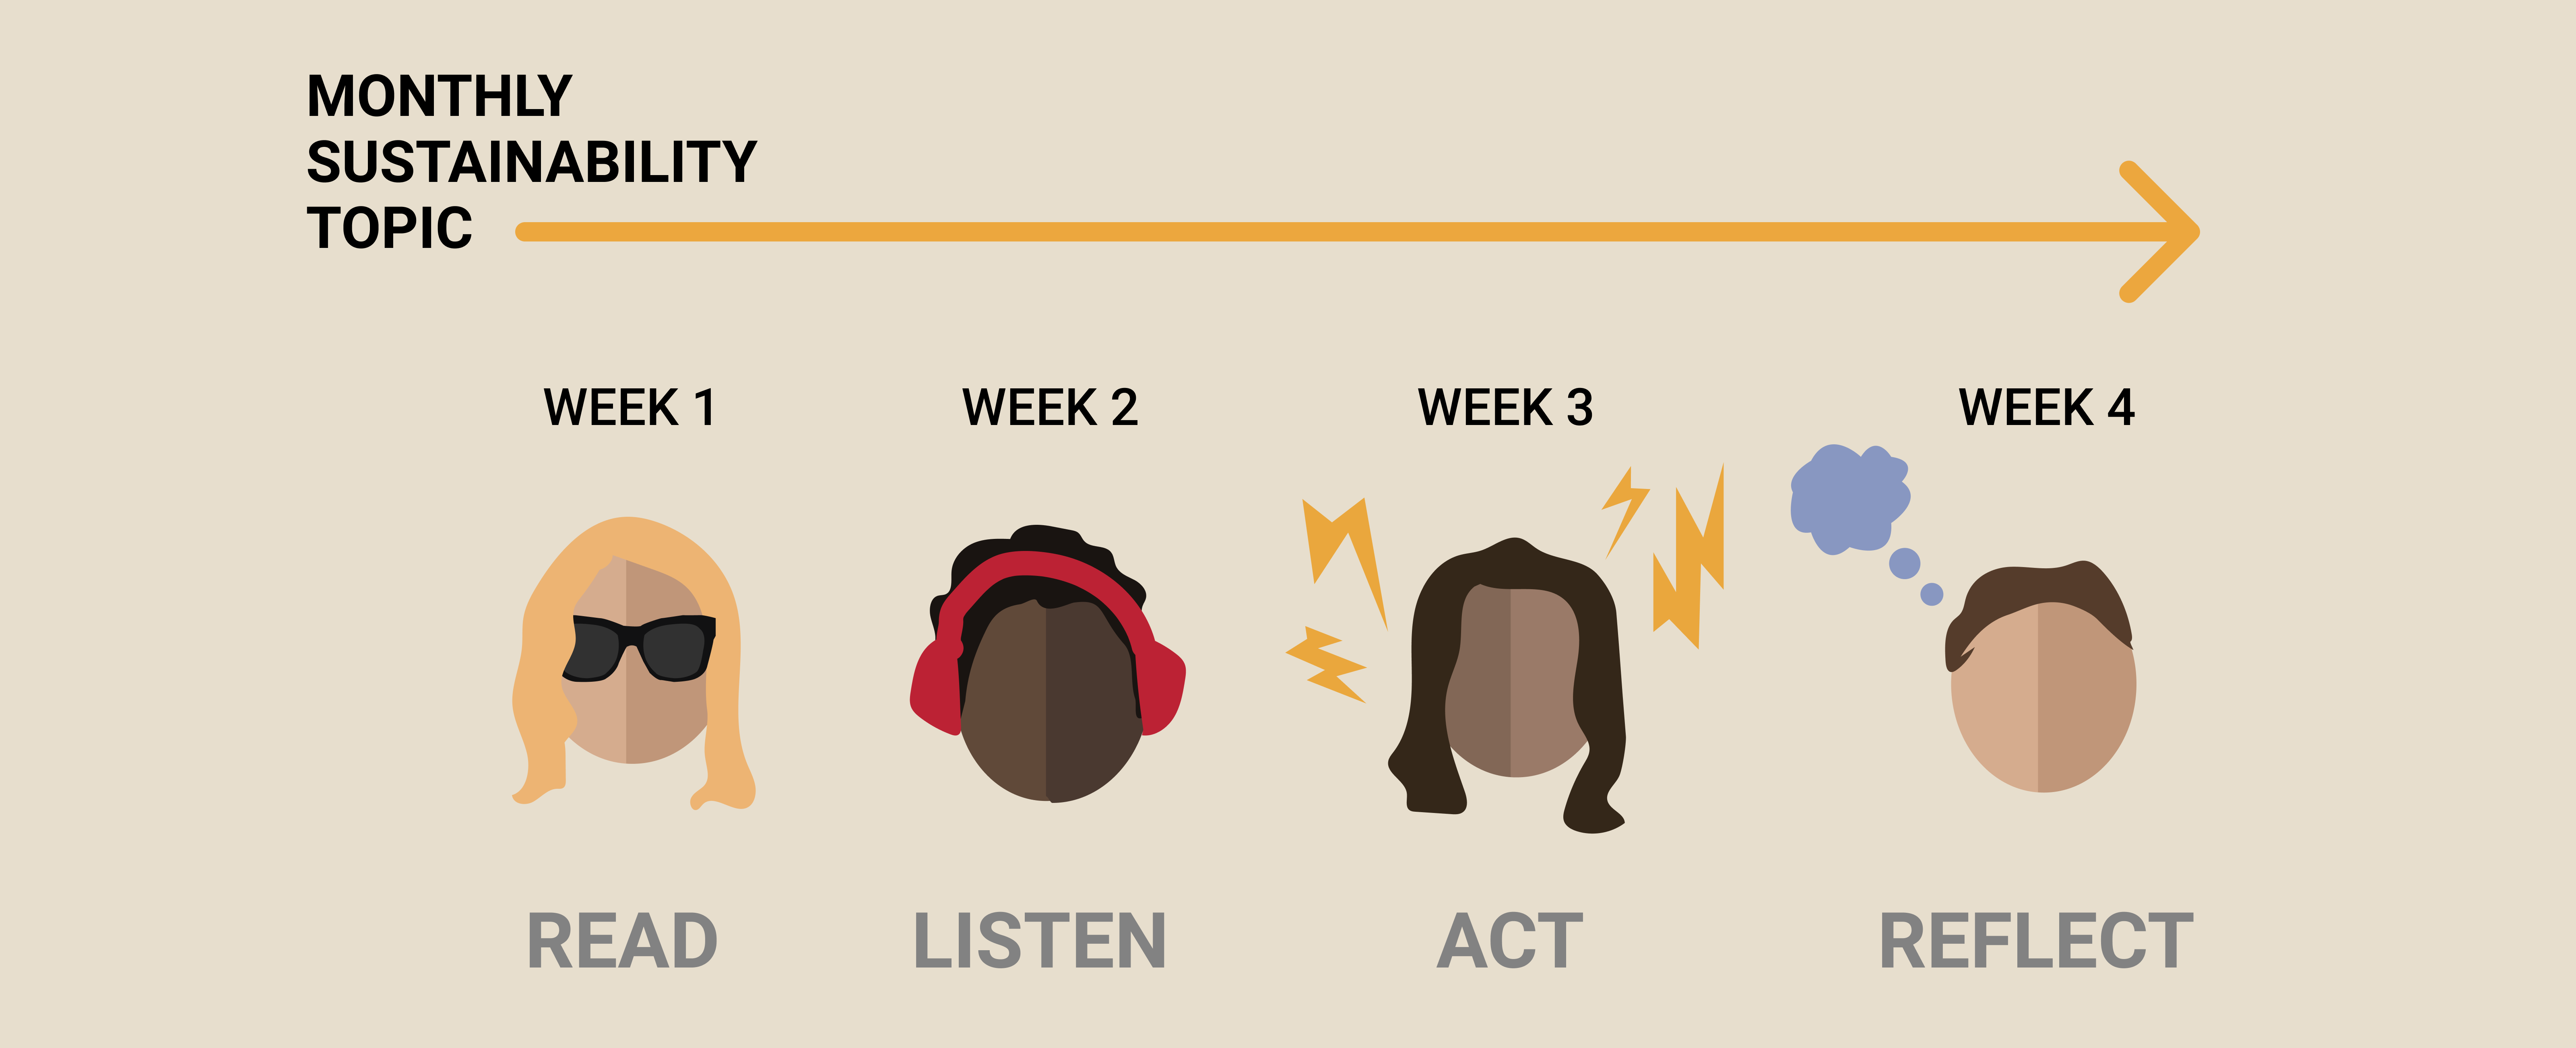 4 characters displaying read, listen, act, and reflect on a monthly sustainability topic